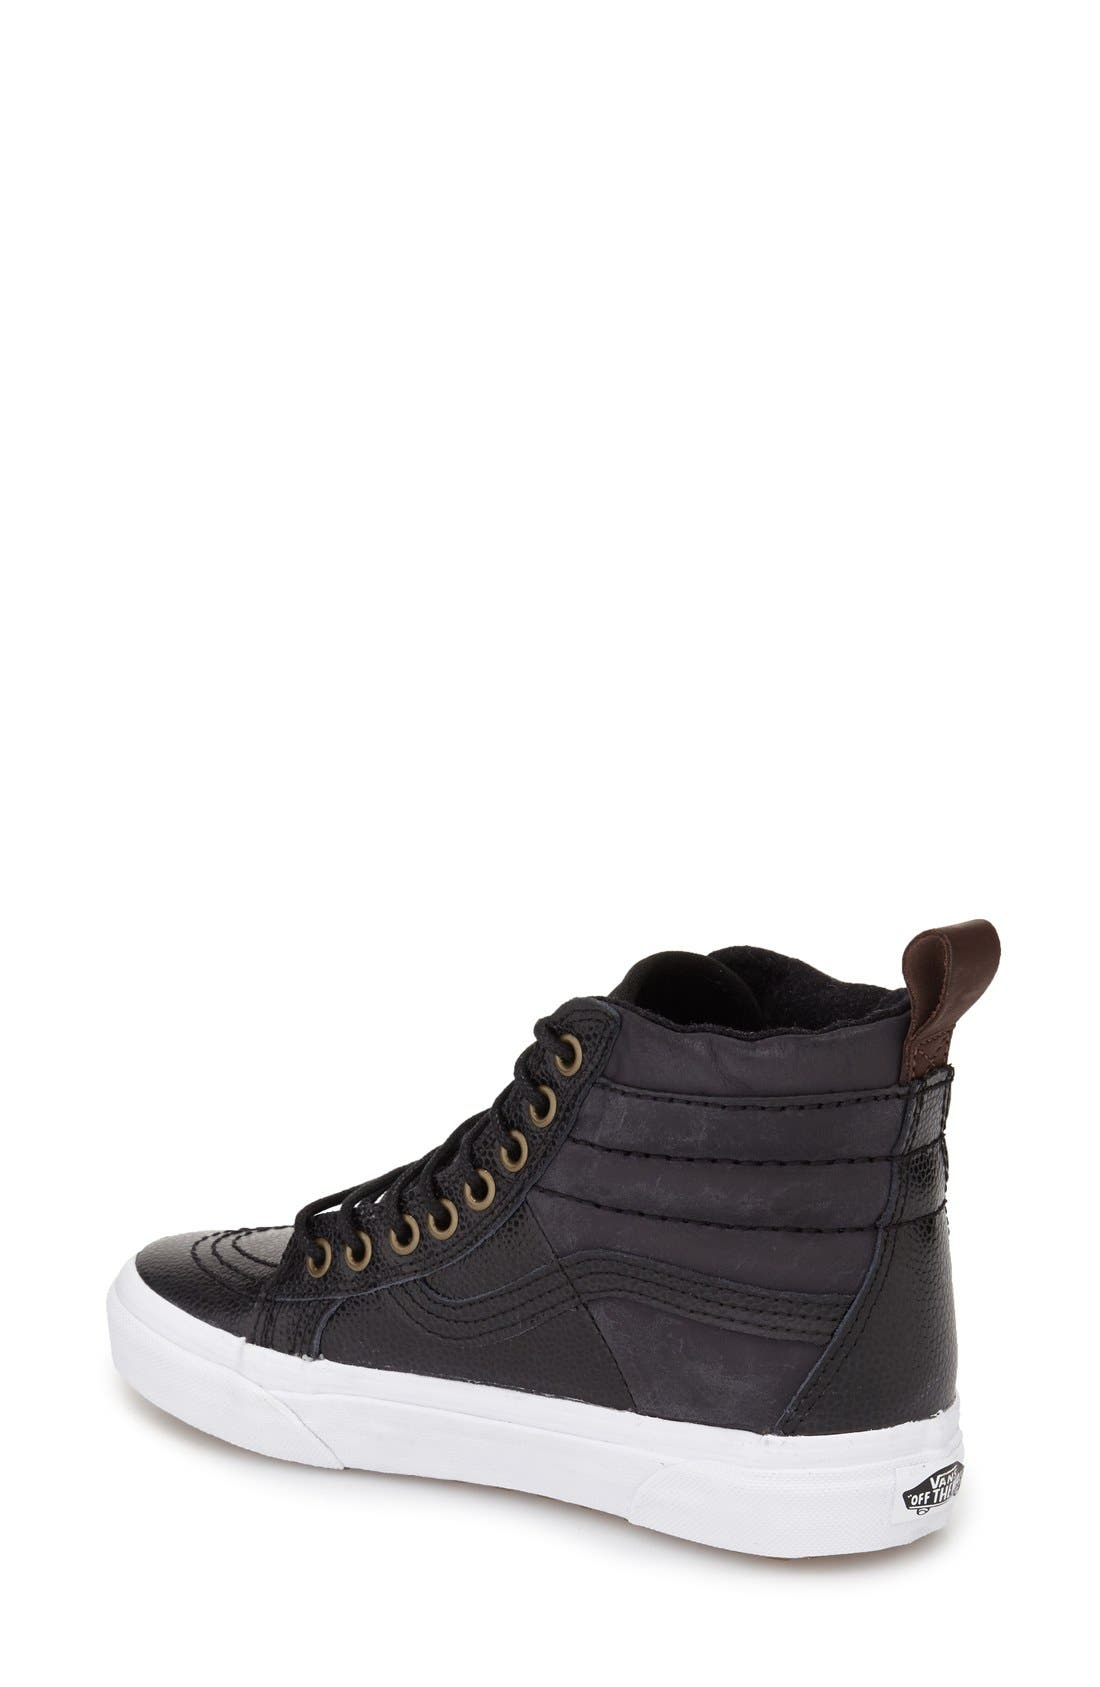 'Hana Beaman - Sk8-Hi 46 MTE' Water Resistant High Top Sneaker,                             Alternate thumbnail 2, color,                             001